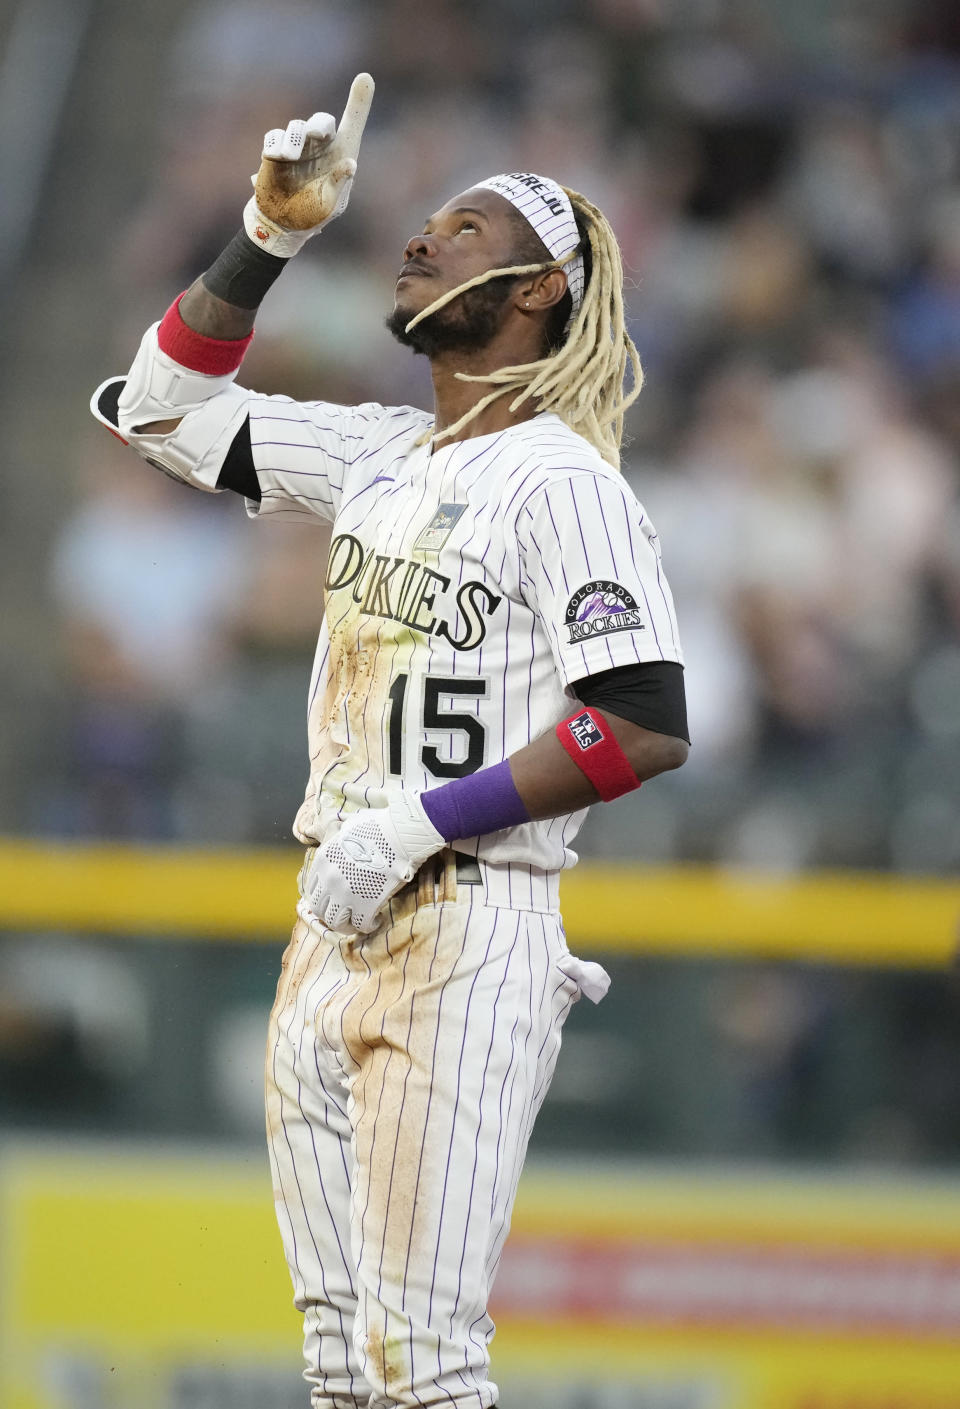 Colorado Rockies' Raimel Tapia gestures after reaching second base with a double off Texas Rangers starting pitcher Jordan Lyles during the fifth inning of a baseball game Wednesday, June 2, 2021, in Denver. (AP Photo/David Zalubowski)